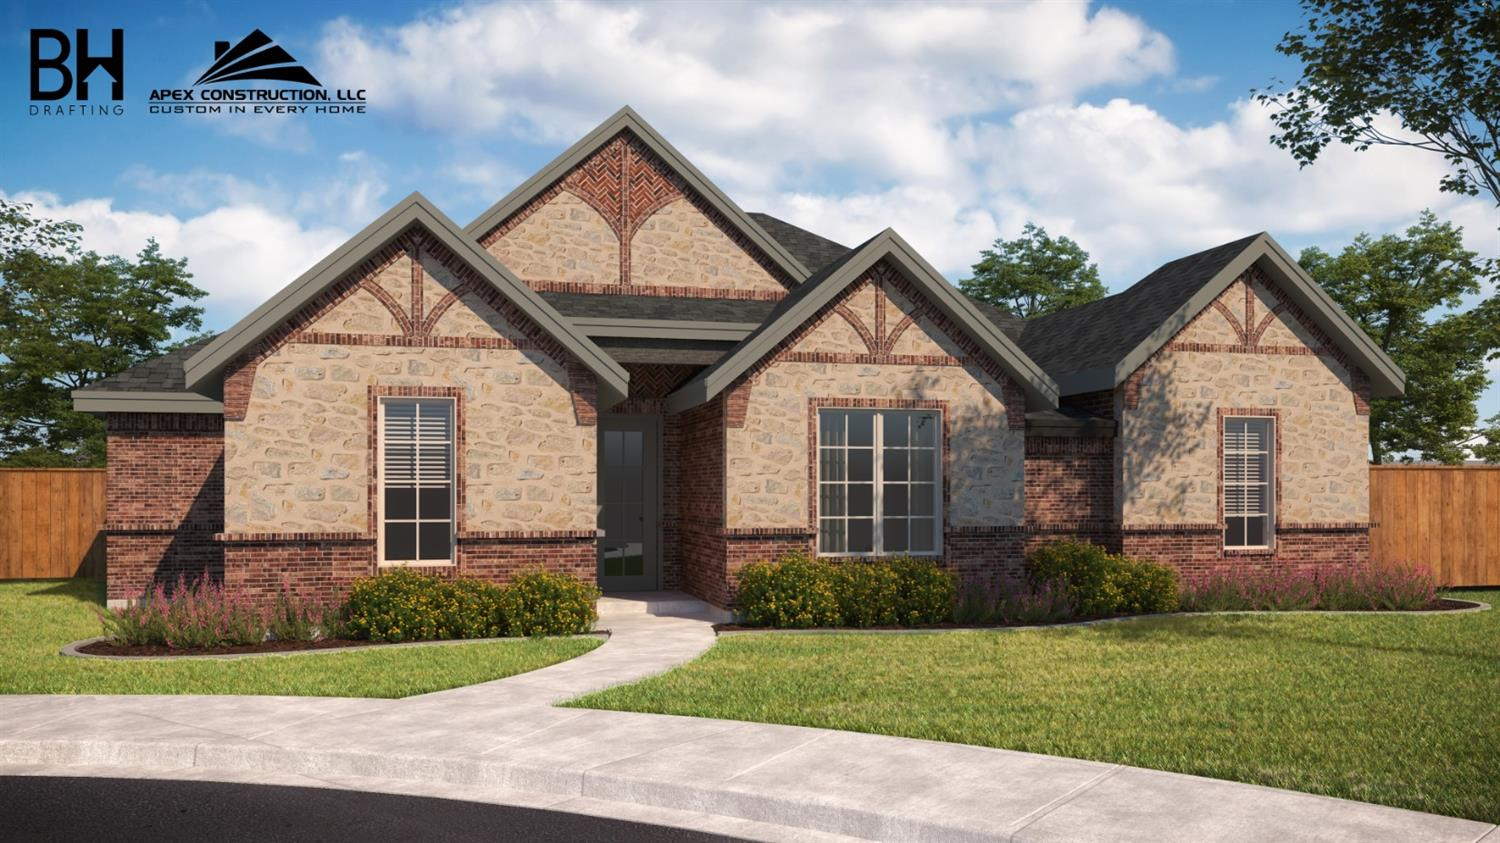 This spacious home is under constructions and set to be completed in June 2020. This home will offer vaulted ceiling in the master bedroom, spacious walk in closets. Beautiful open concept floor plan with a dining area off of the kitchen. This home has 4 bedrooms, 3 bathrooms and a rear entry 2 car garage.